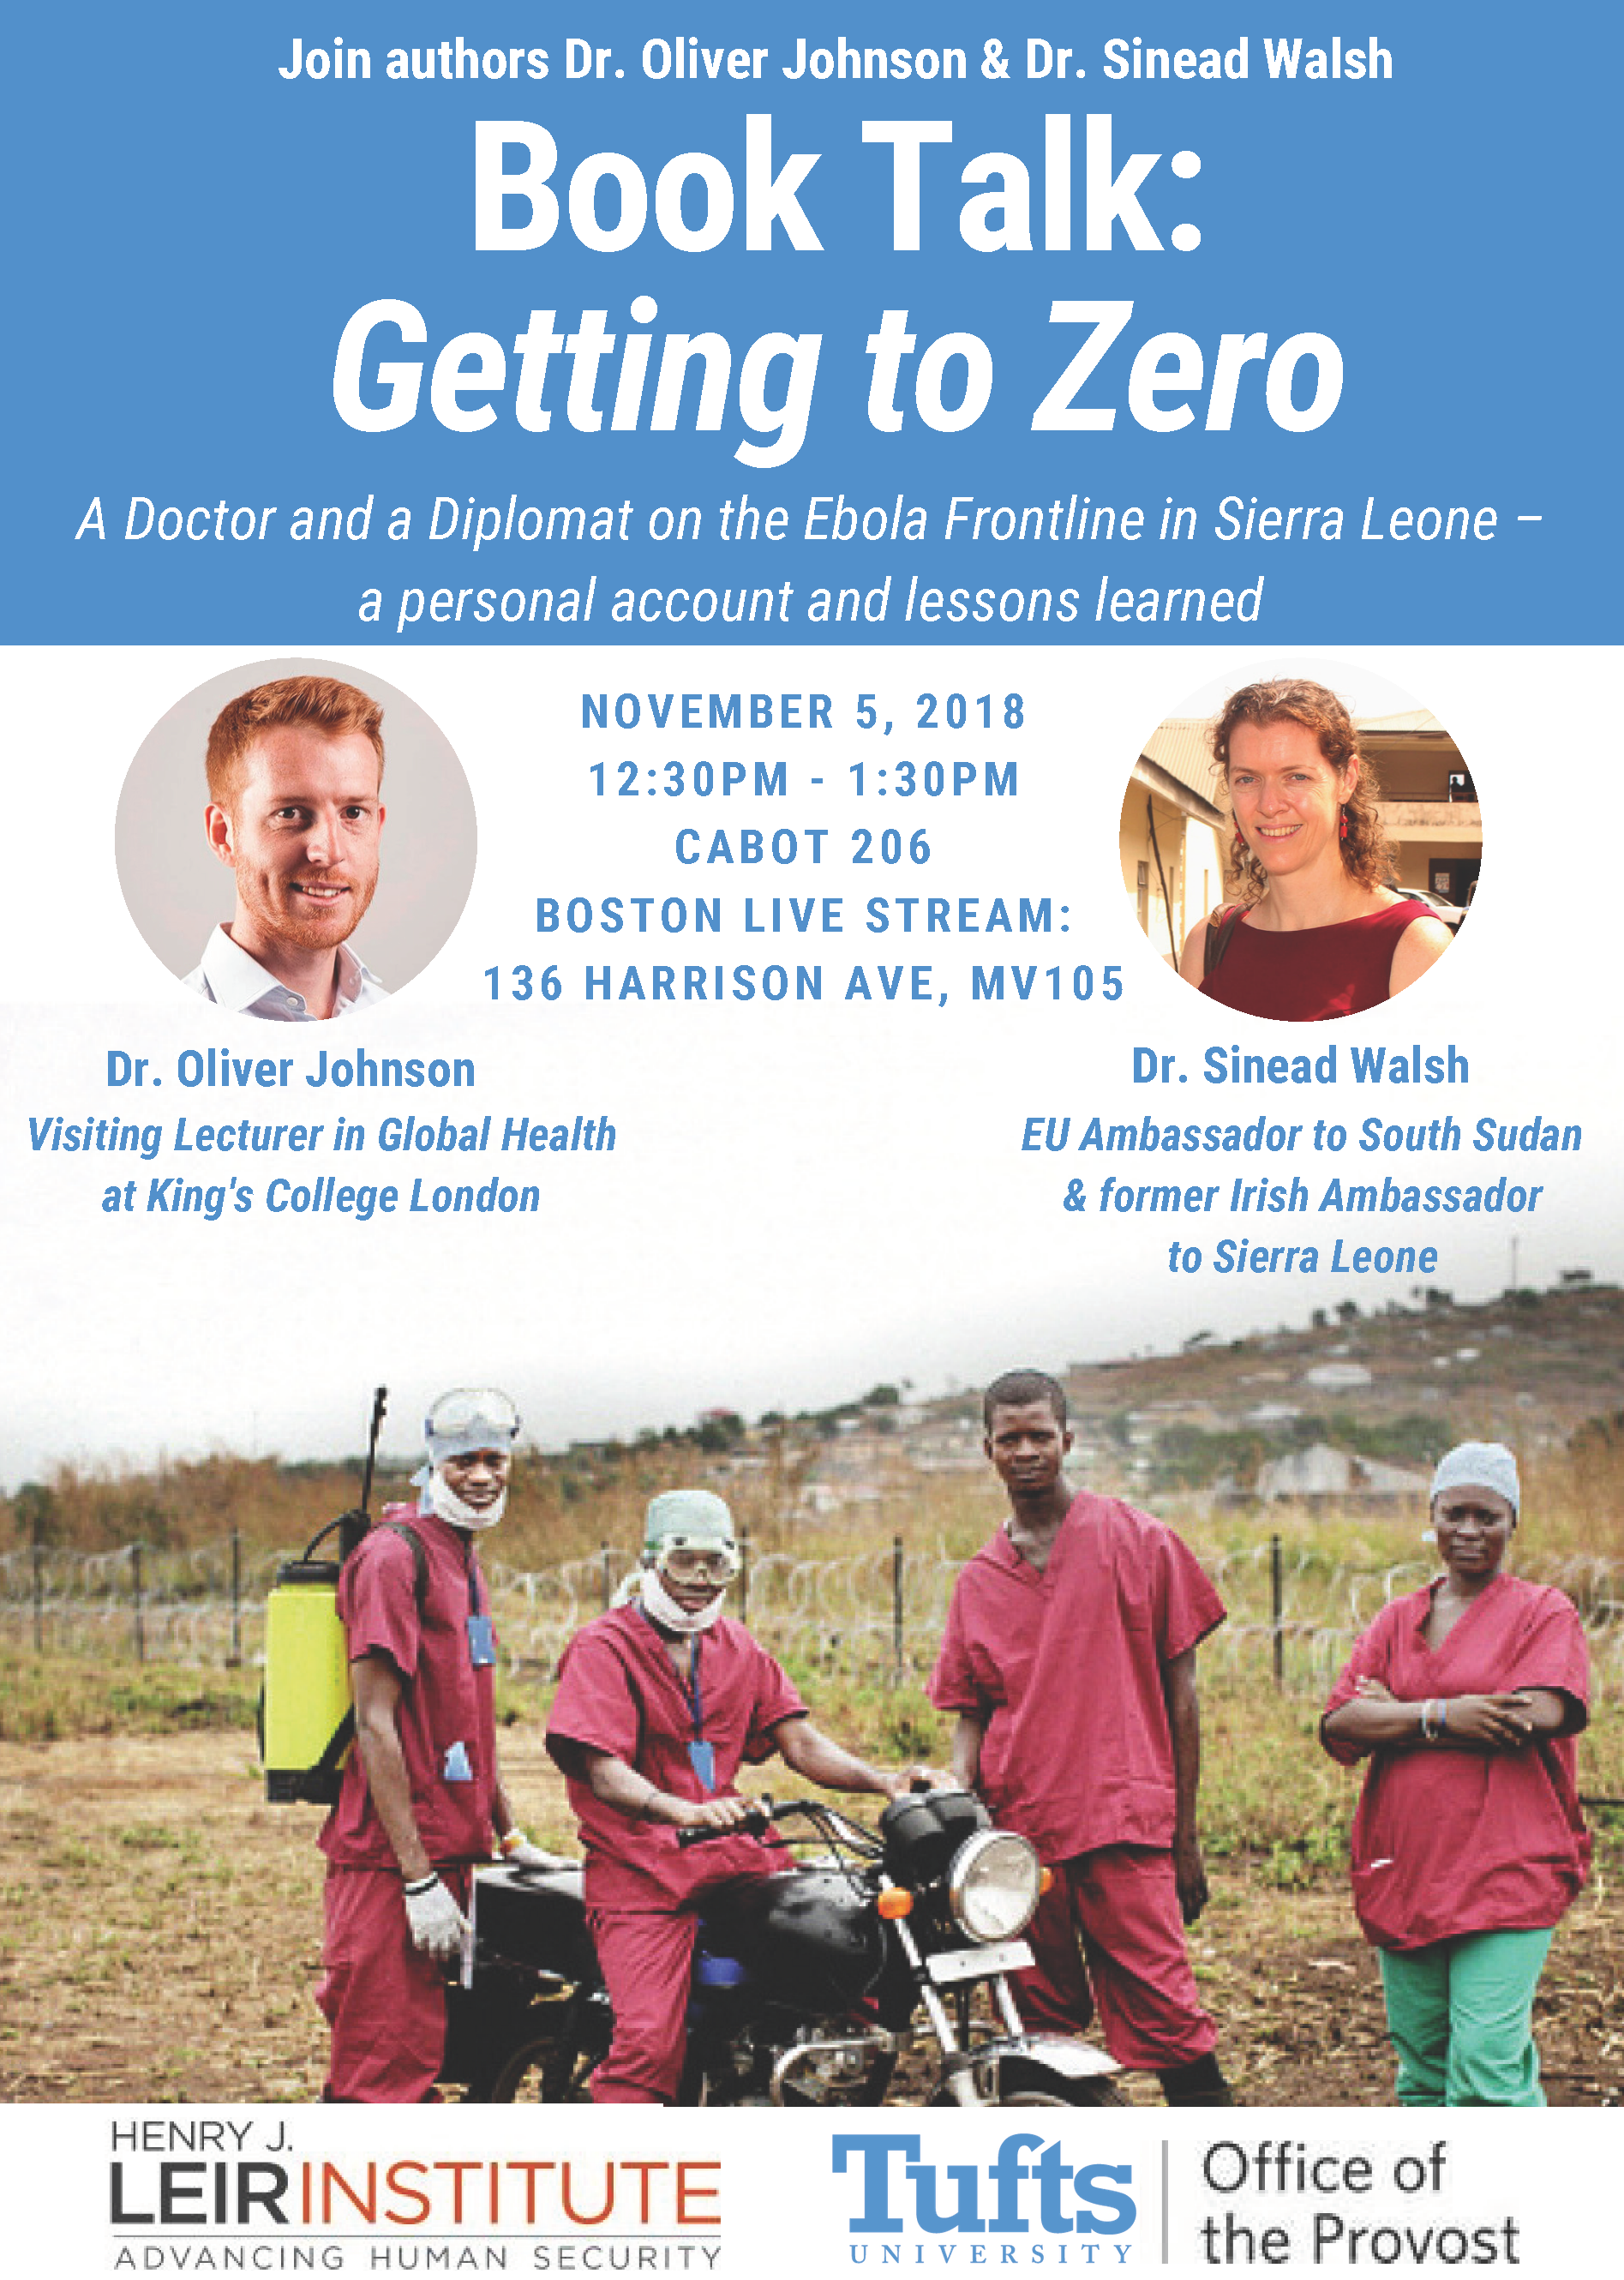 Book Talk: Getting to Zero